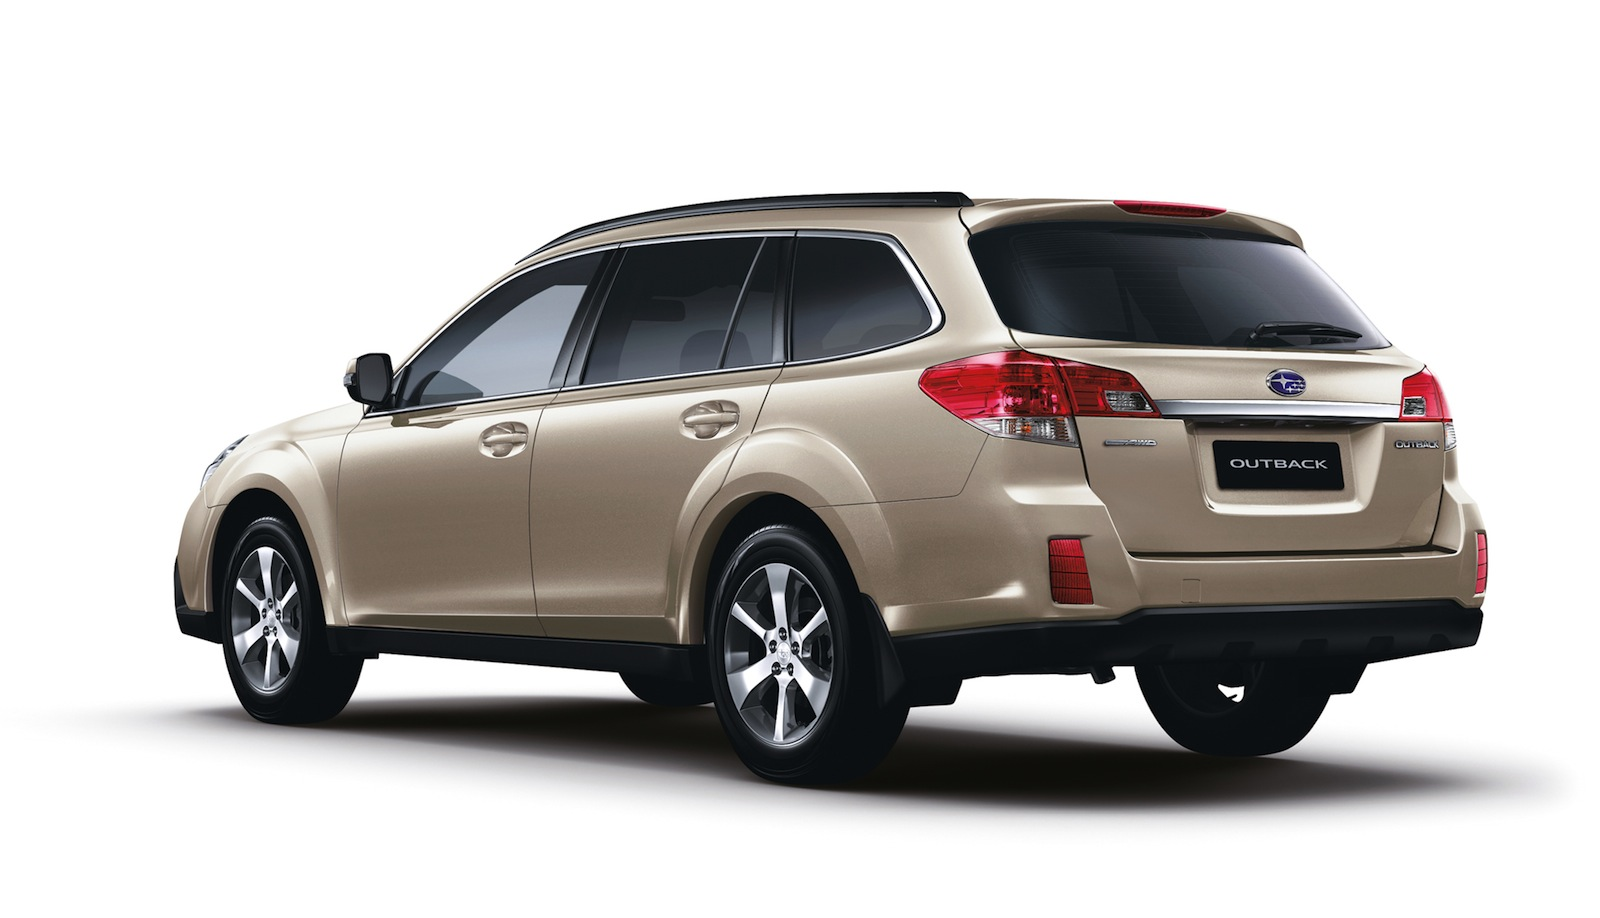 2013 subaru outback update brings price cuts up to 4000 photos caradvice. Black Bedroom Furniture Sets. Home Design Ideas